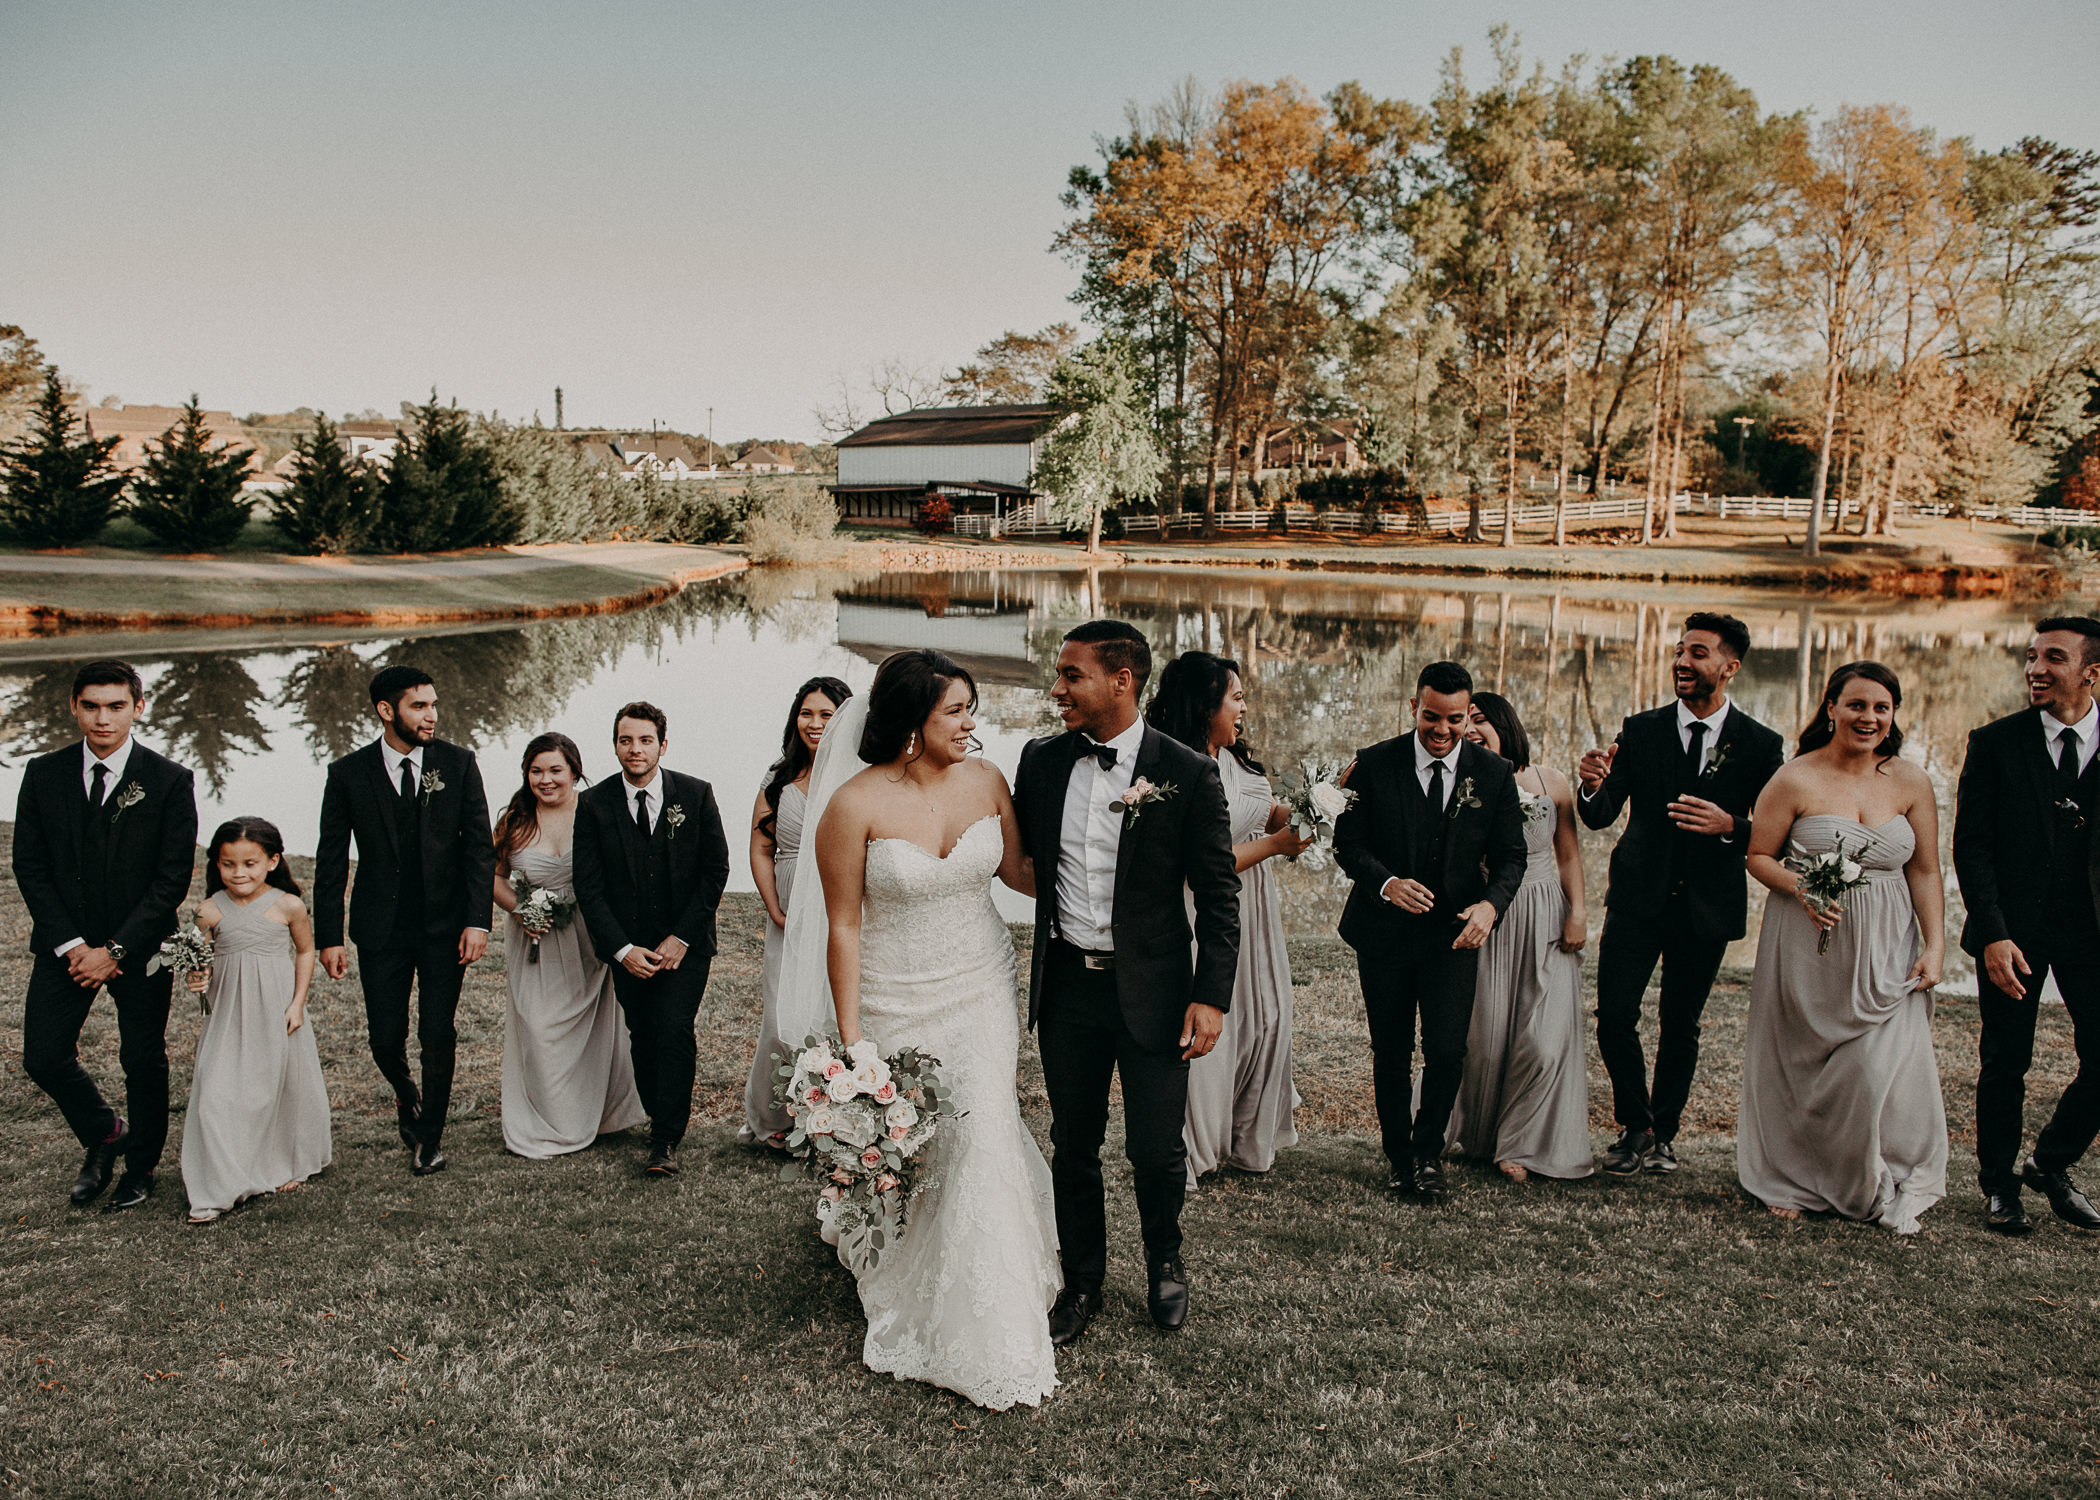 46  - Little River Farms - first look - Atlanta - Wedding Venue - Atlanta Wedding Photographer - Georgia weddings details wedding dress shoes gather groom bridal party .jpg